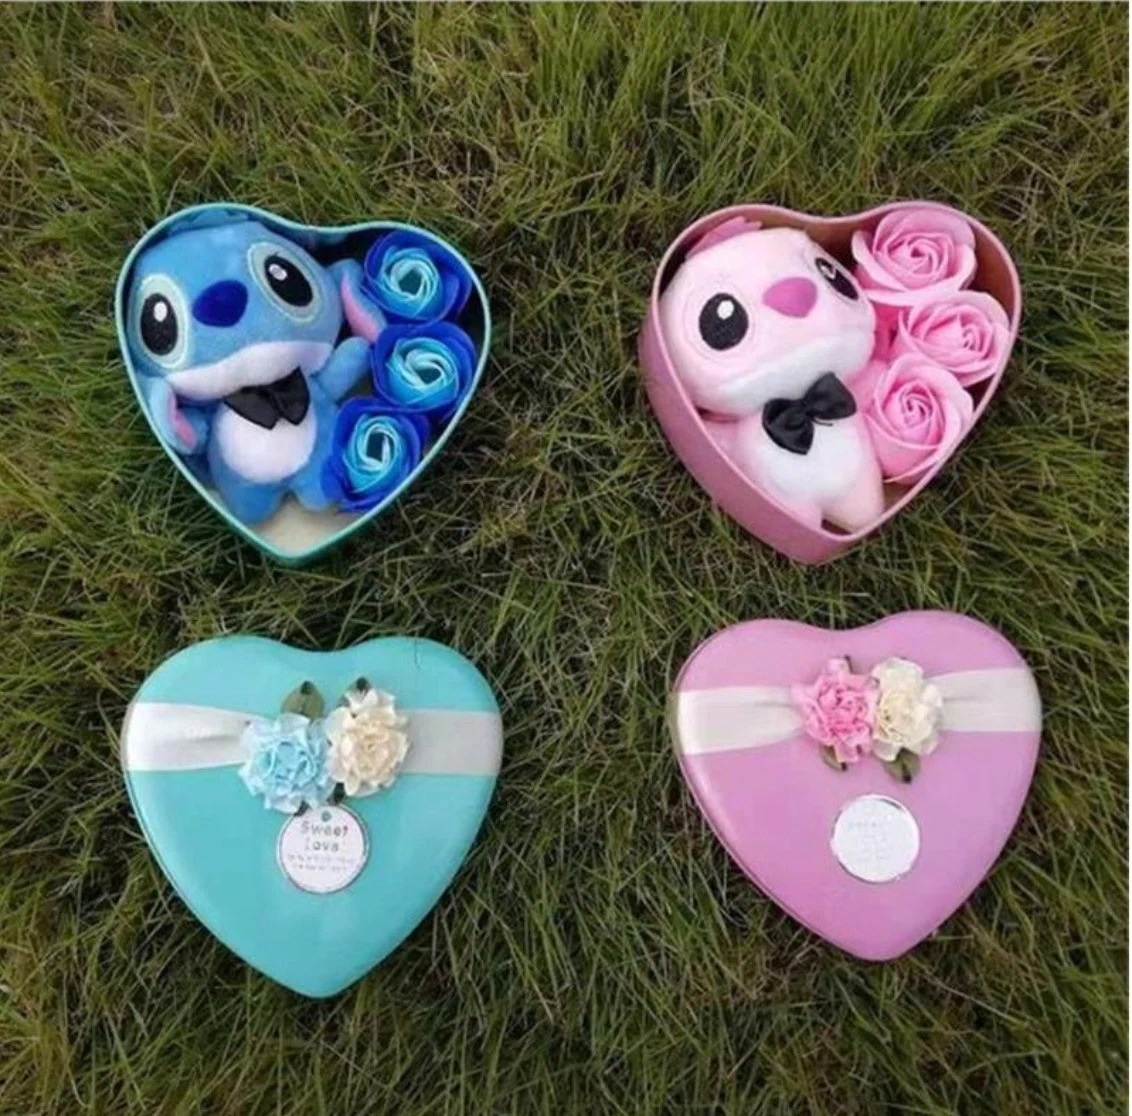 Inspired by disney Handmade lovely stitch plush toys with soap image 1